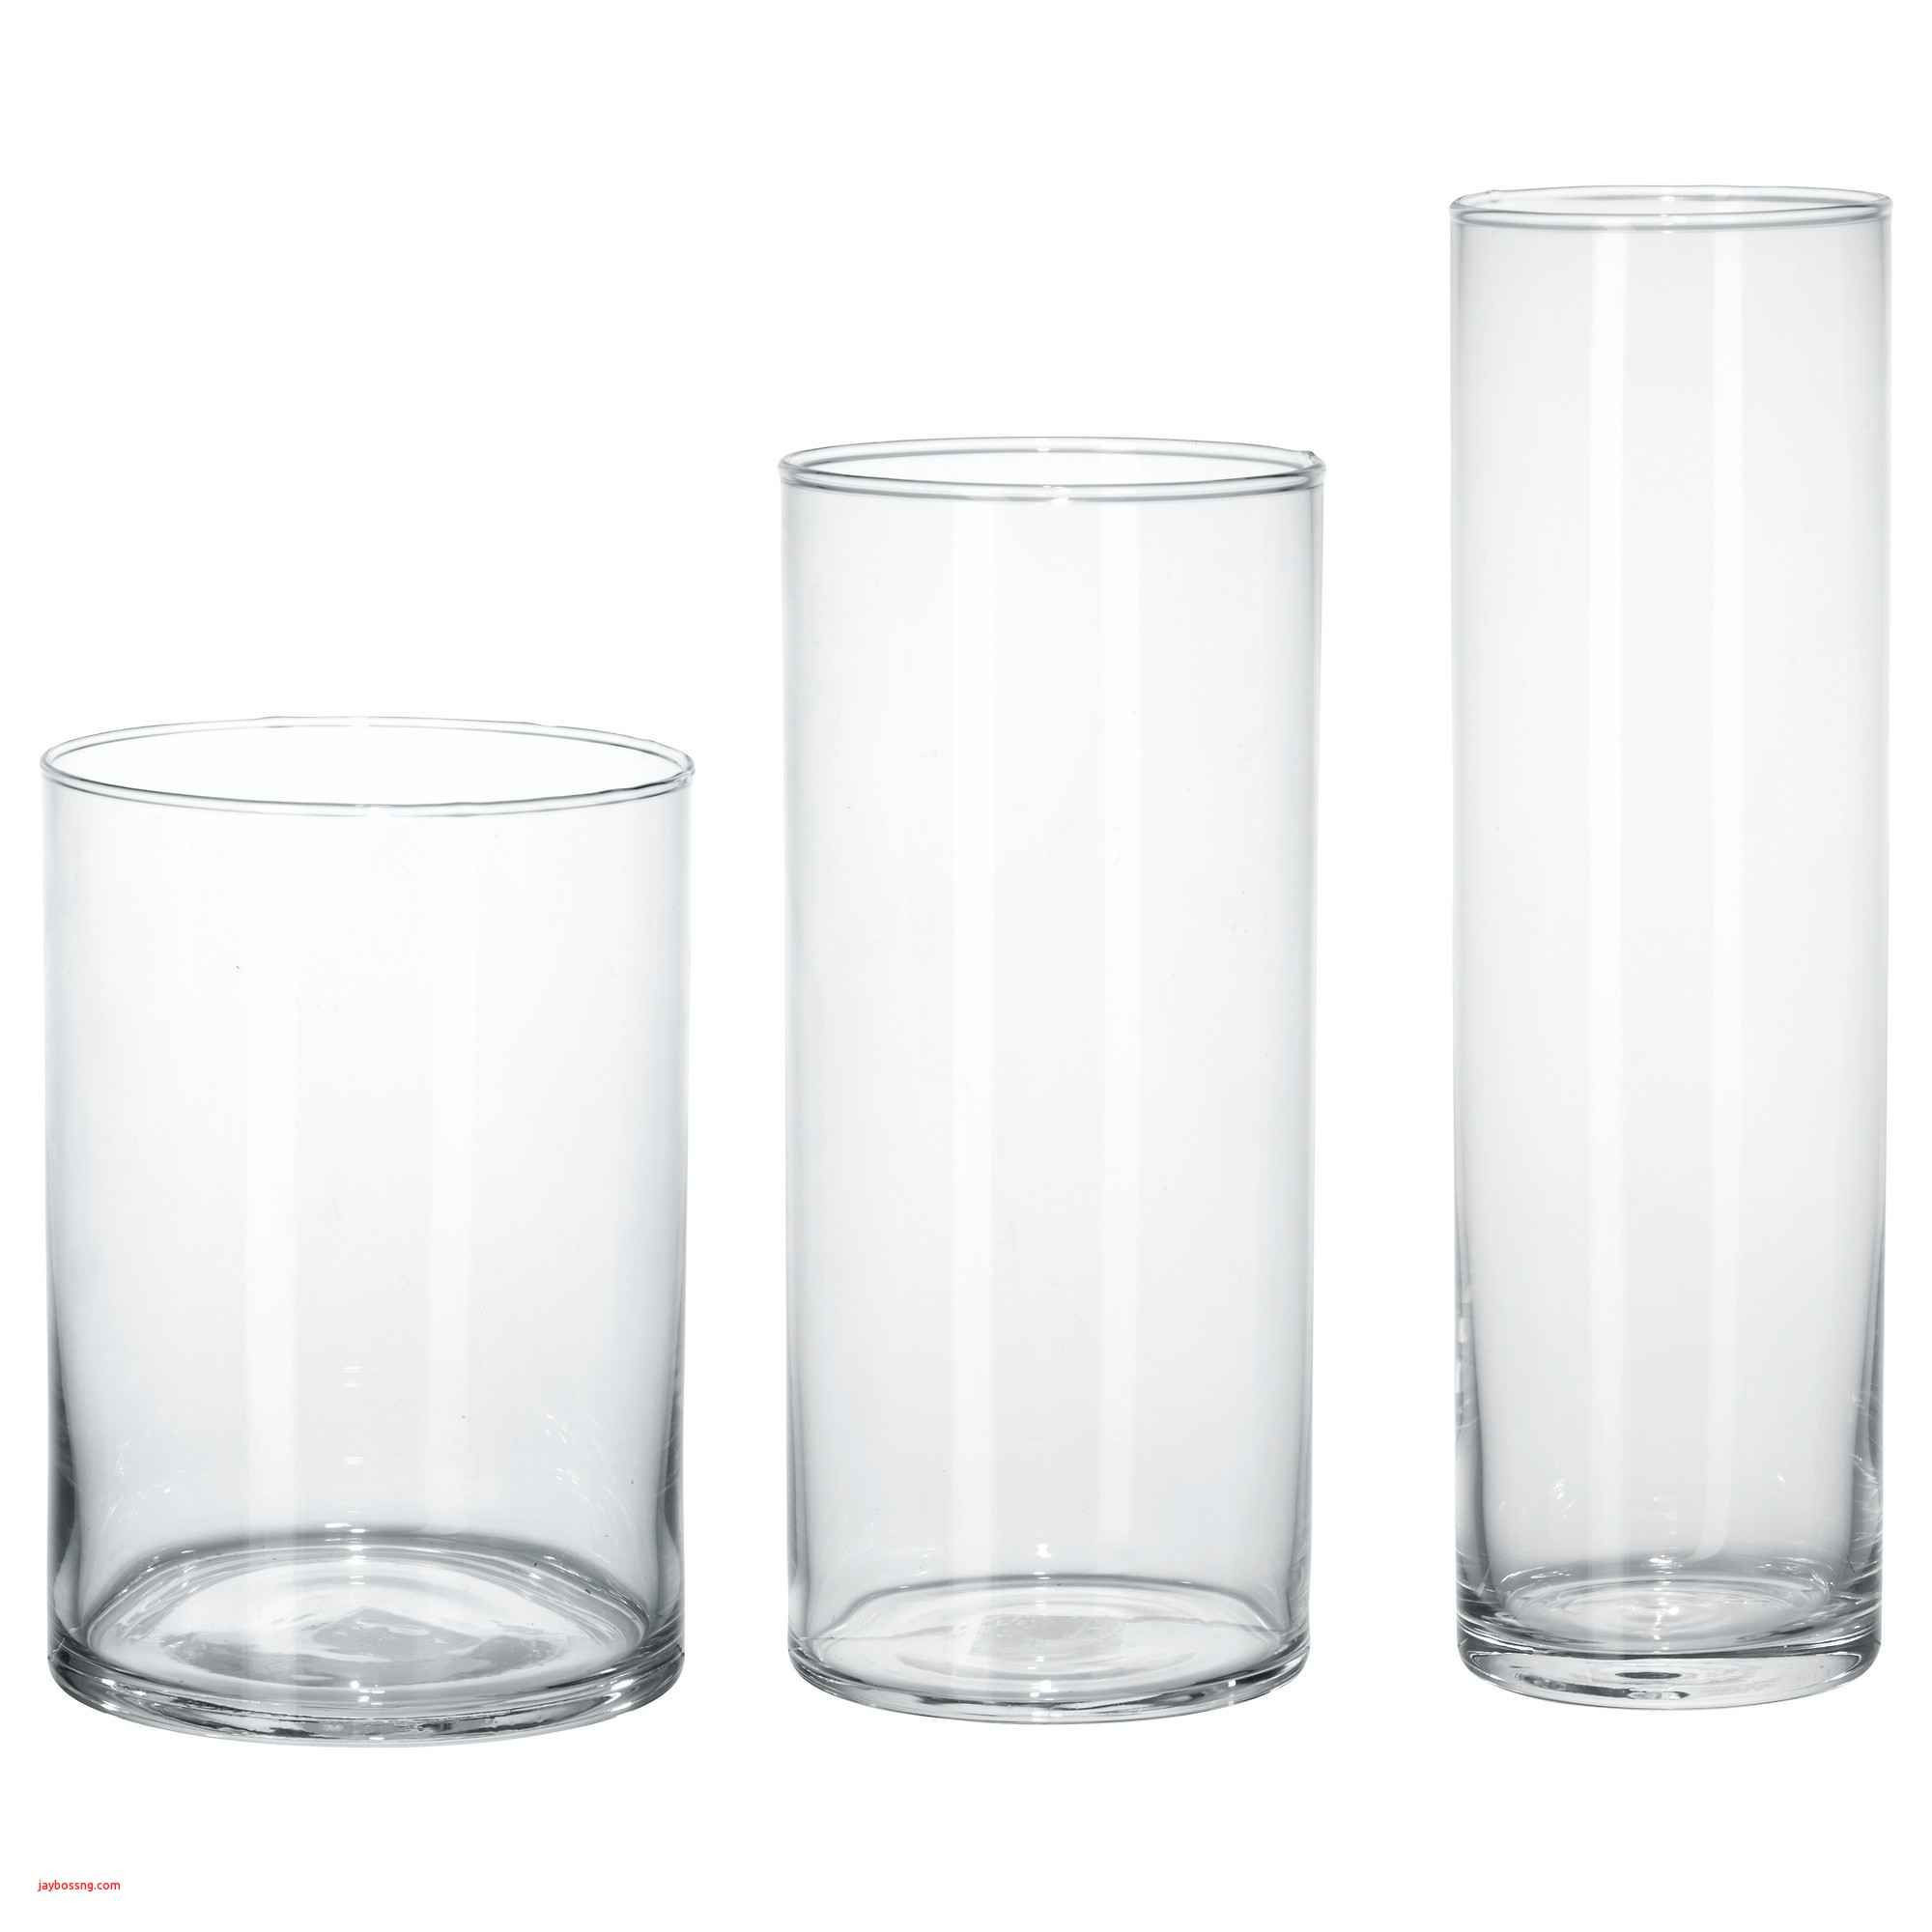 Large White Vase Of Brown Glass Vase Fresh Ikea White Table Created Pe S5h Vases Ikea with Brown Glass Vase Fresh Ikea White Table Created Pe S5h Vases Ikea Vase I 0d Bladet